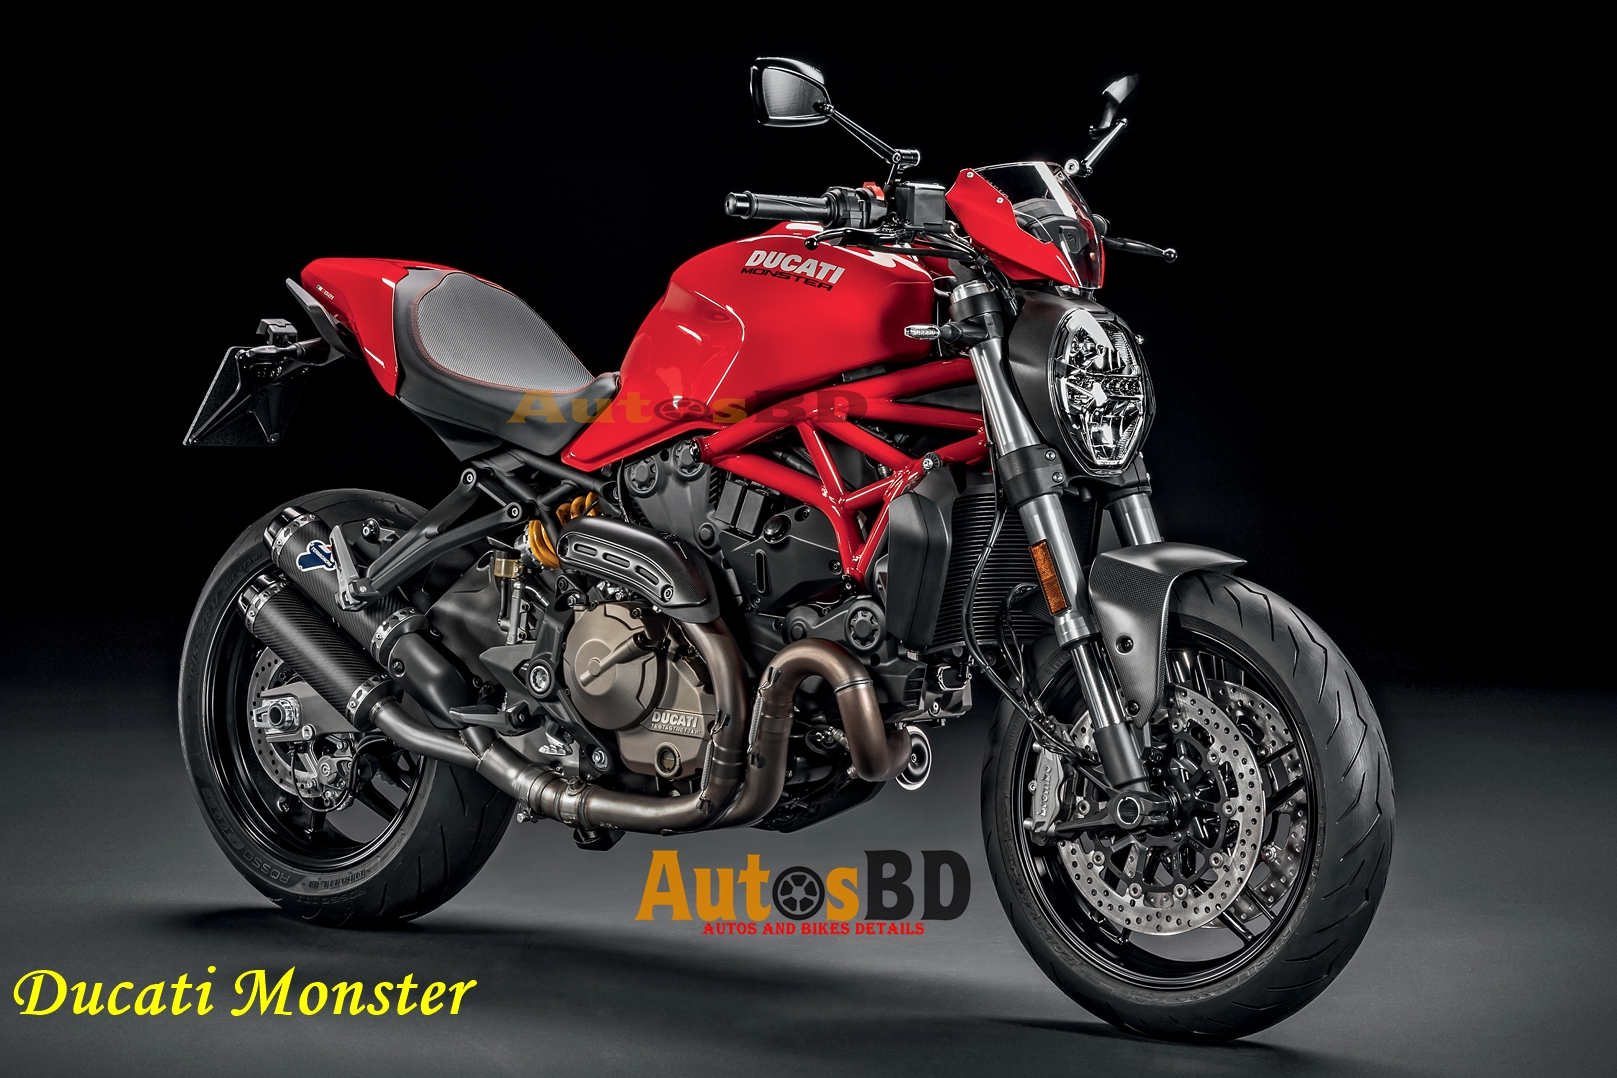 Ducati Monster Motorcycle Price in India